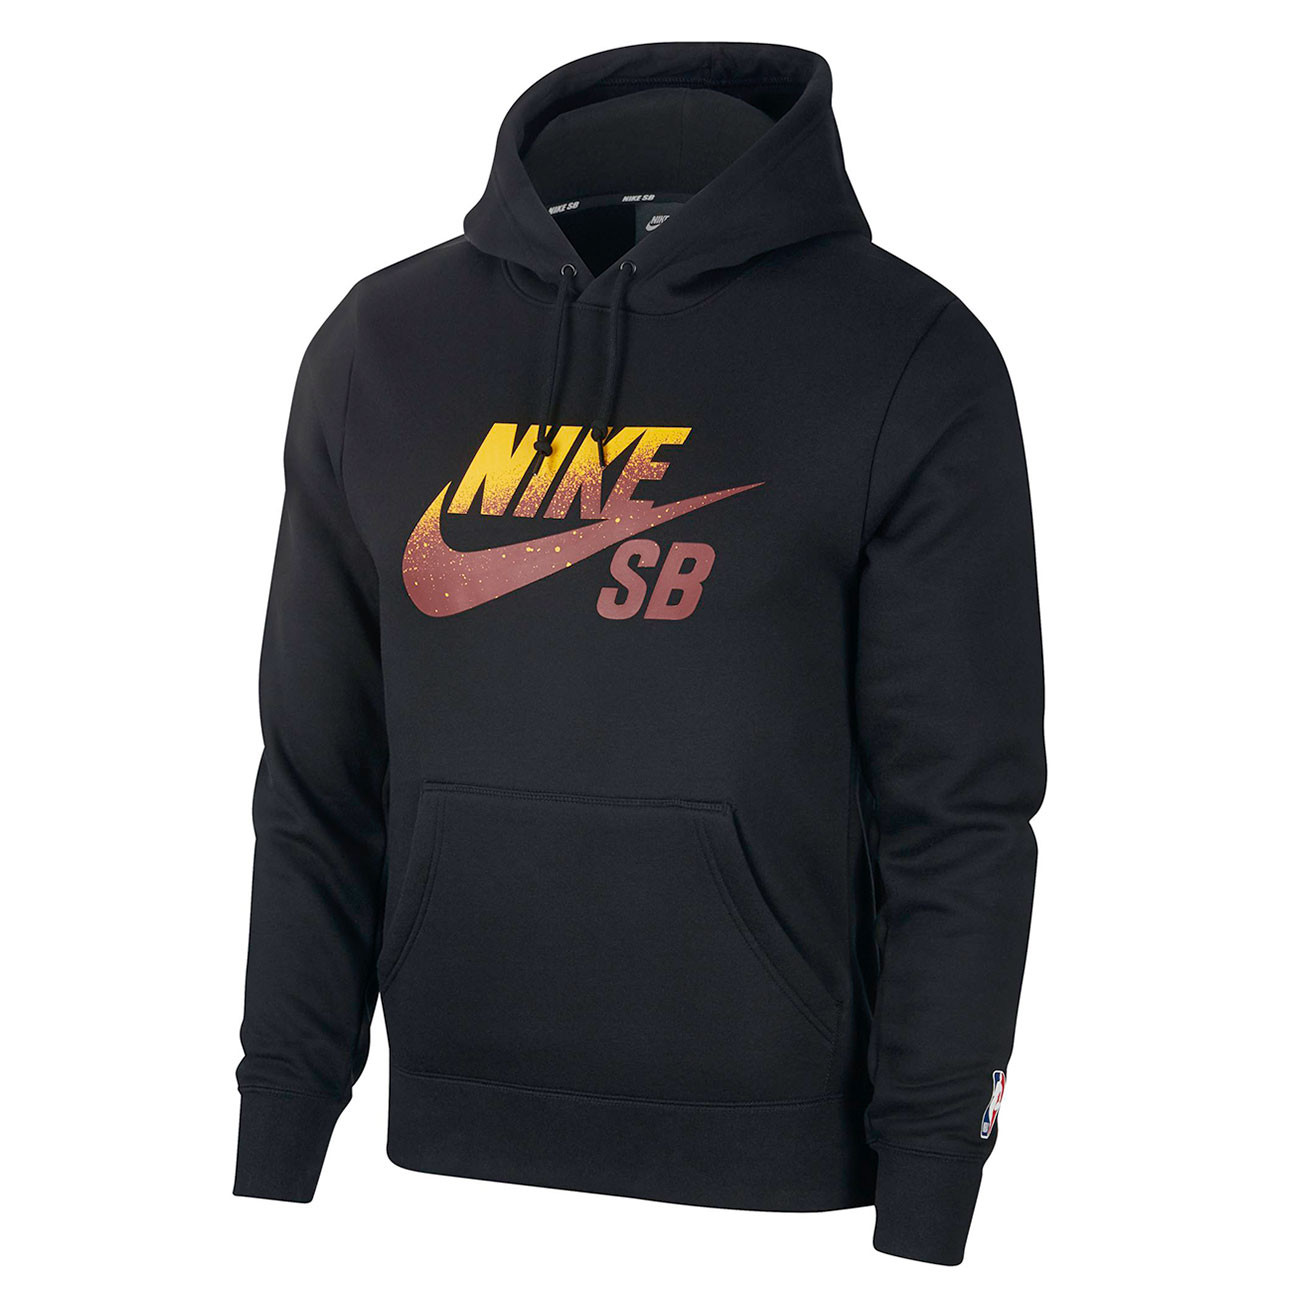 c98f80e70a Hoodie Nike SB Icon Pullover black team red